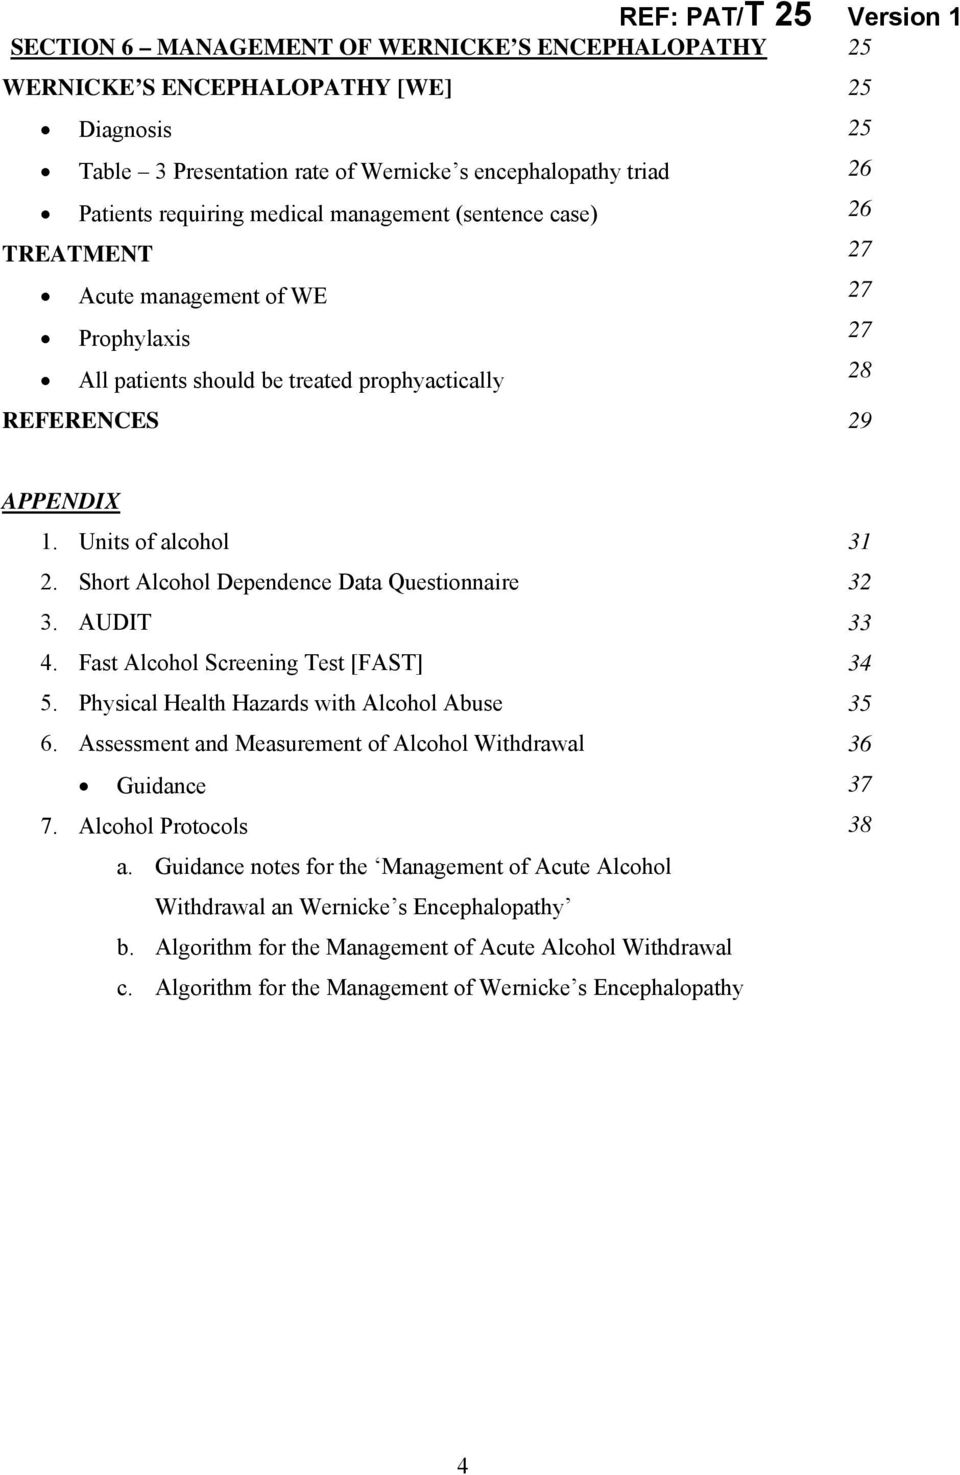 Short Alcohol Dependence Data Questionnaire 3. AUDIT 4. Fast Alcohol Screening Test [FAST] 5. Physical Health Hazards with Alcohol Abuse 6. Assessment and Measurement of Alcohol Withdrawal Guidance 7.